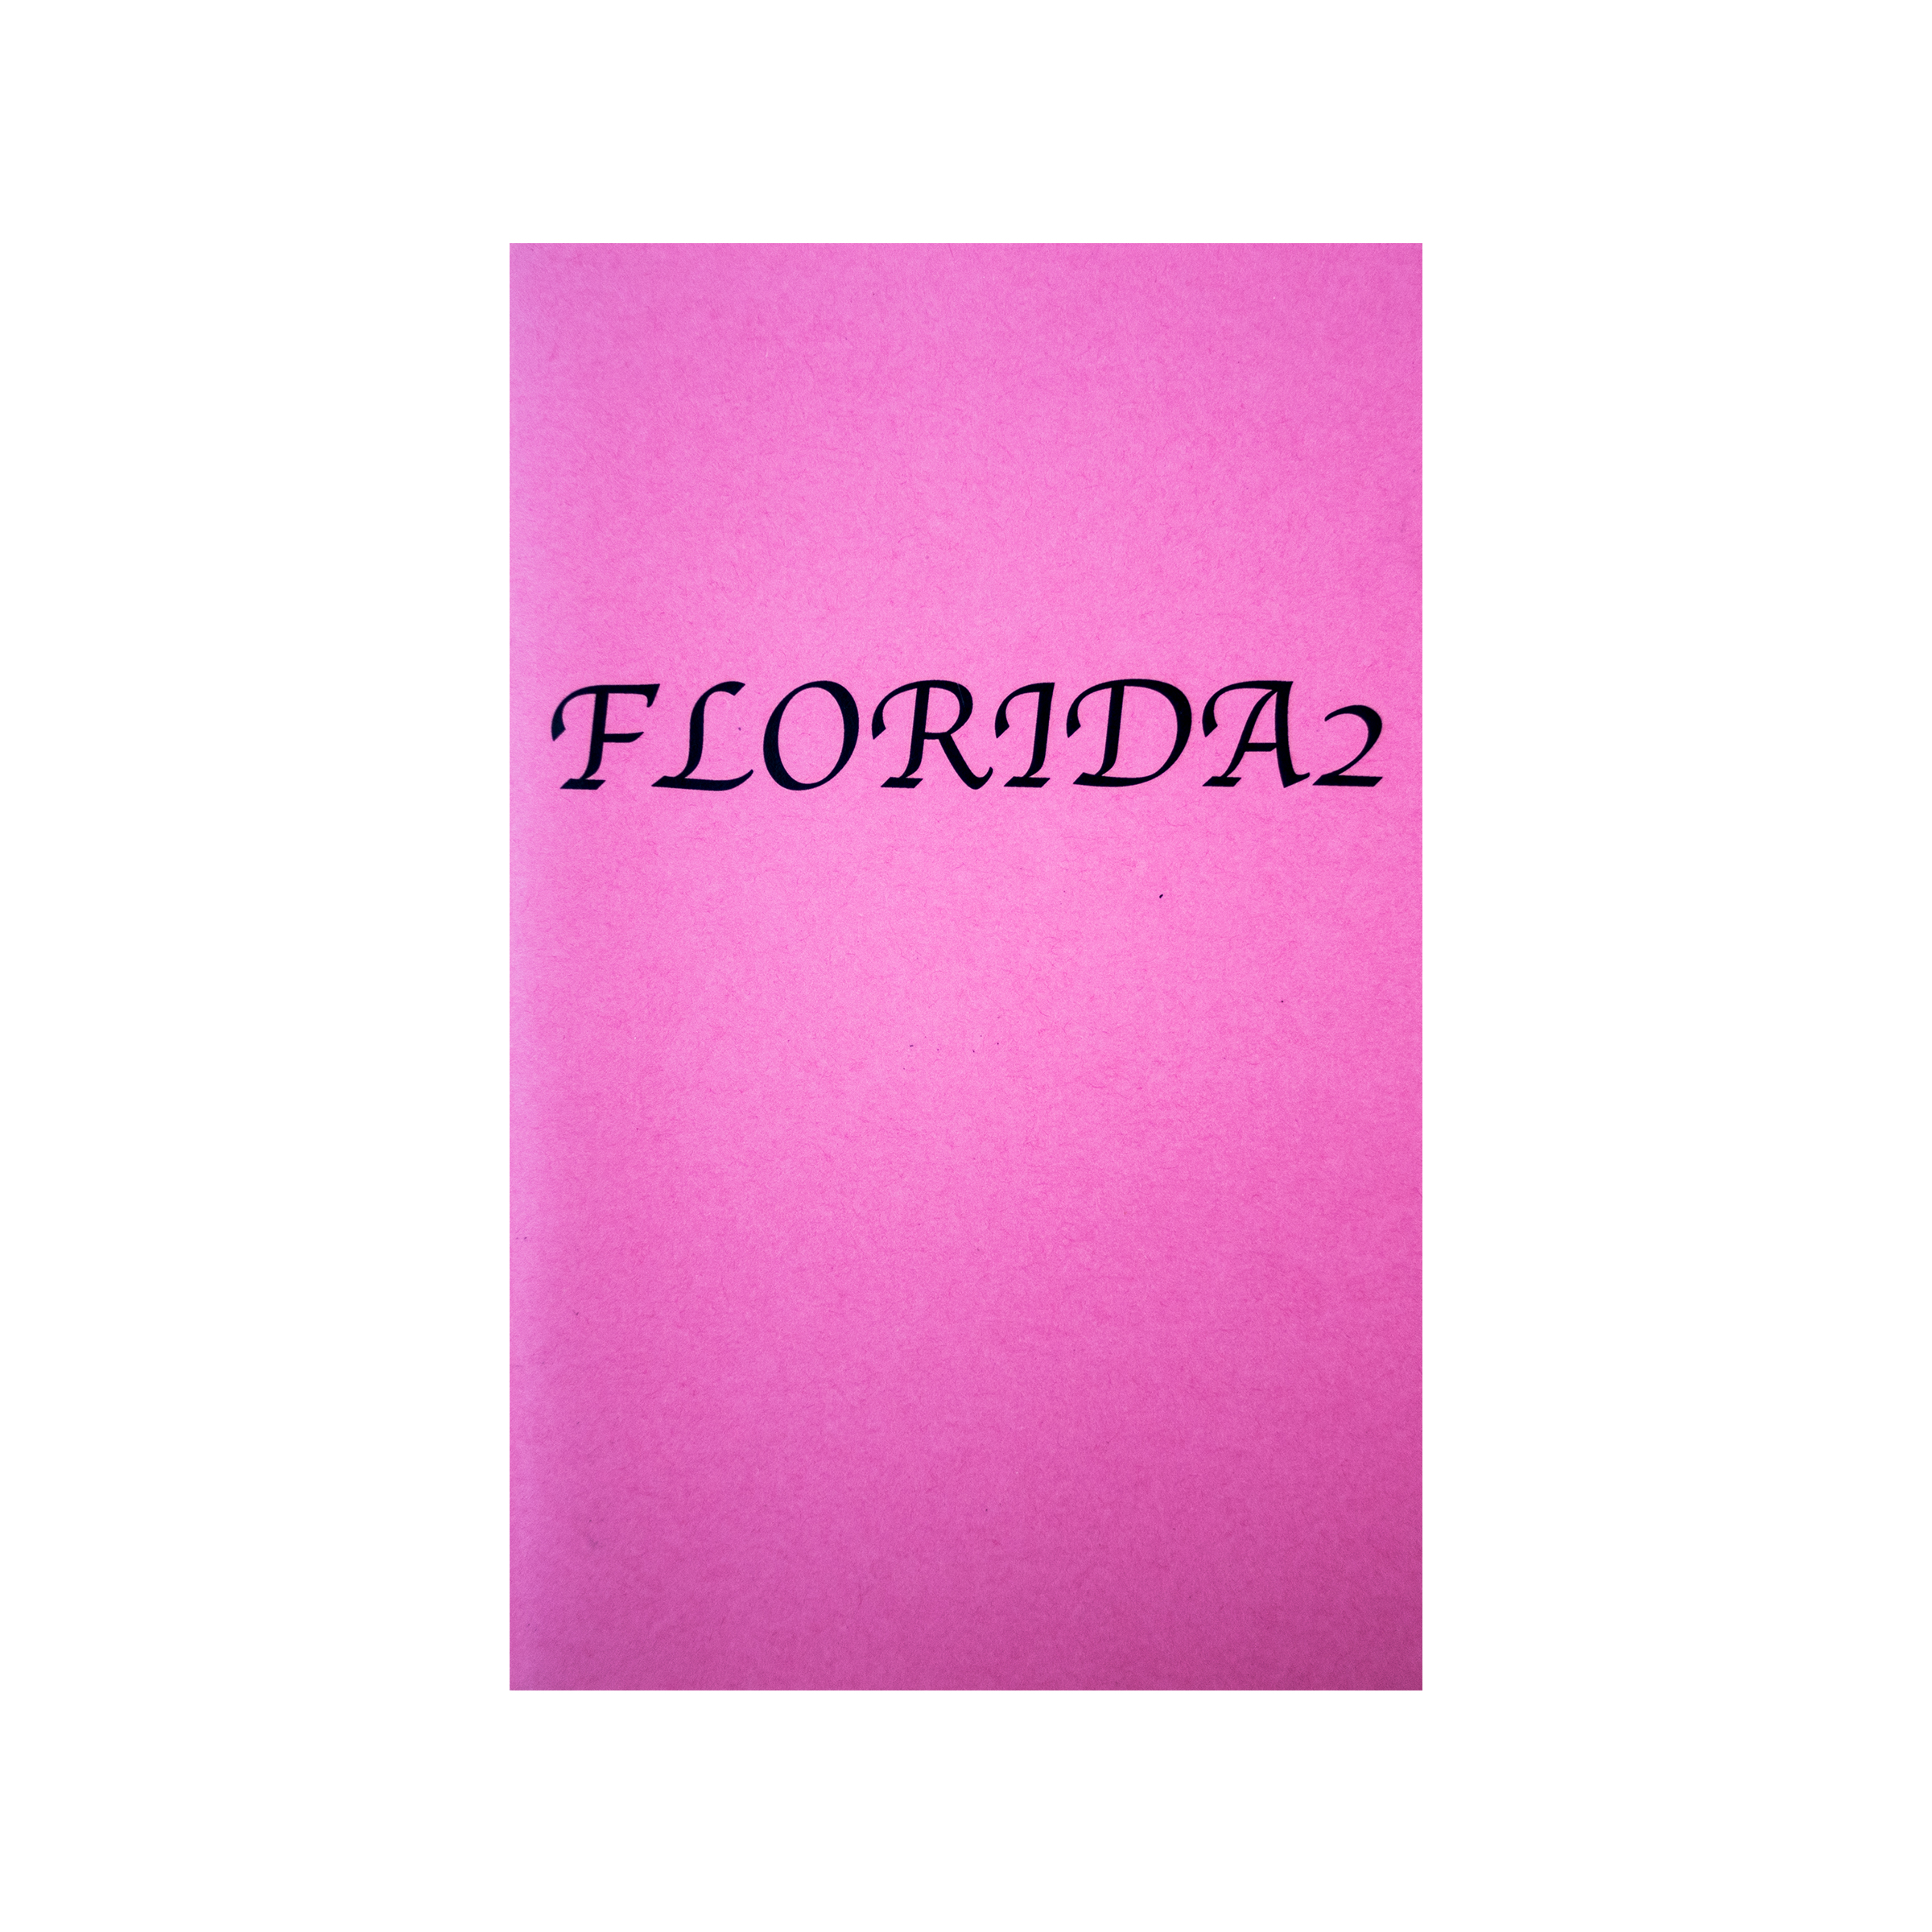 FLORIDA2  $10 (U.S. shipping included)